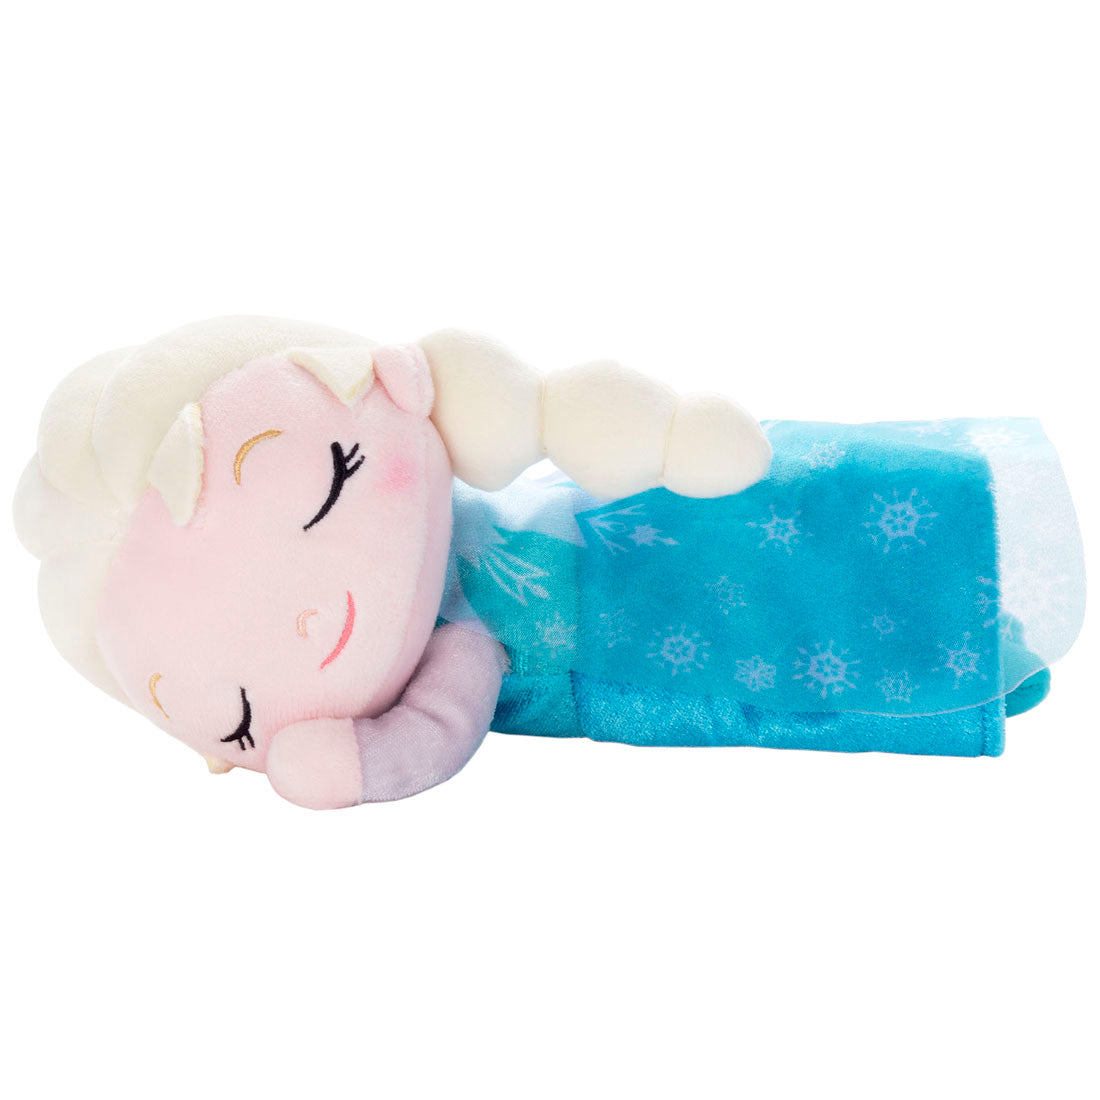 28572c34c91 Frozen Elsa Plush Doll S Suyasuya Sleeping Friend Disney Takara Tomy –  VeryGoods.JP